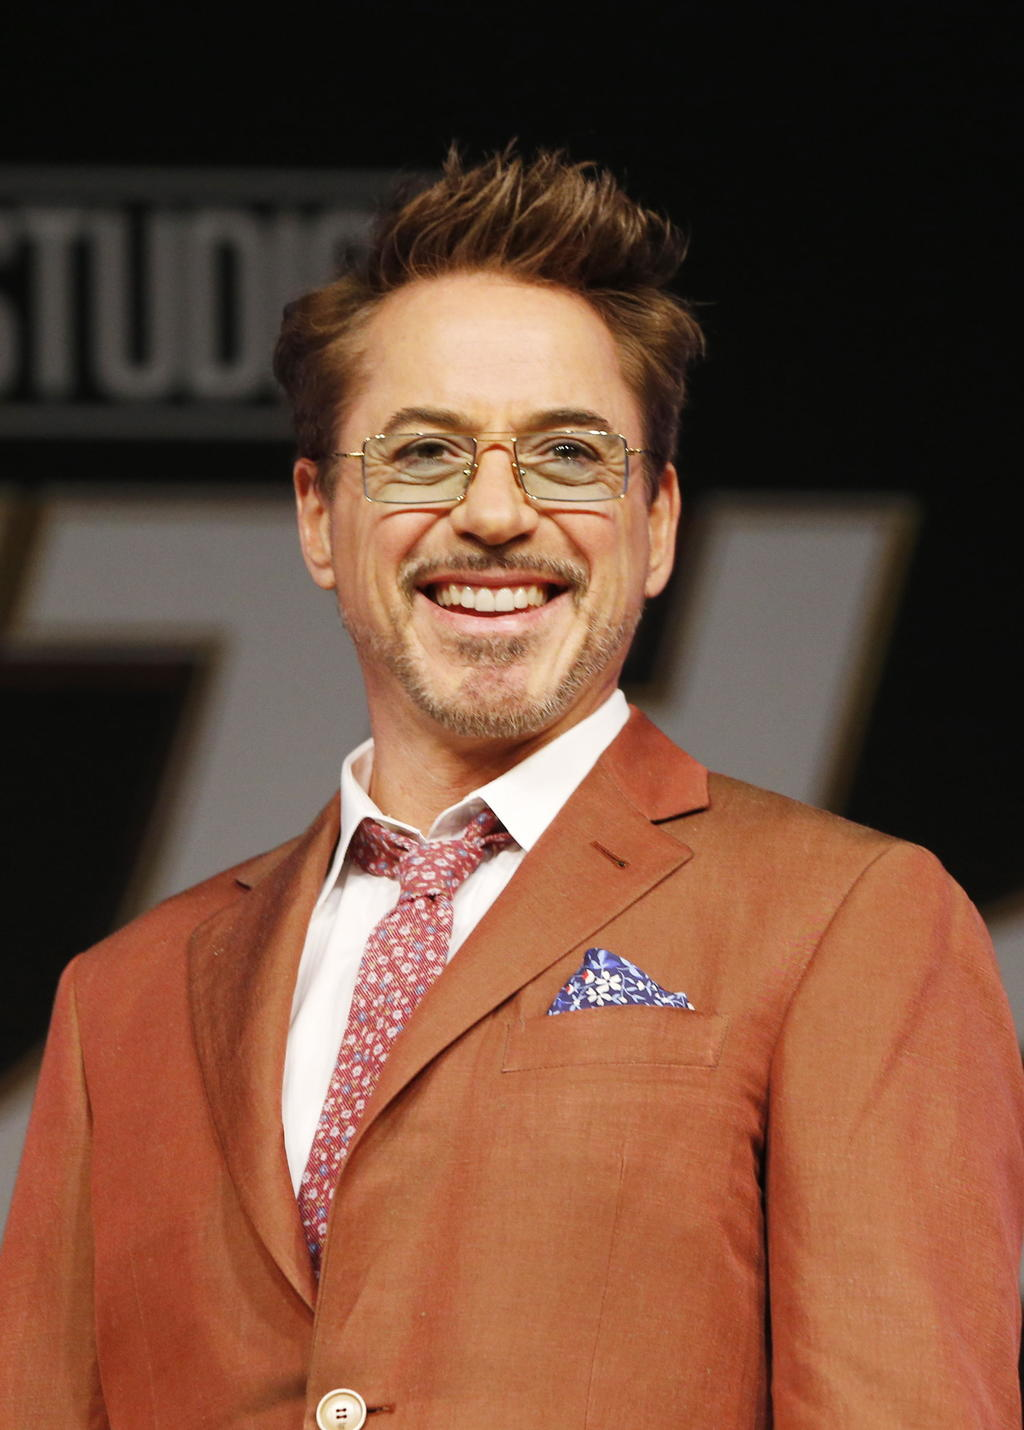 Robert Downey Jr. dice adiós a Iron Man